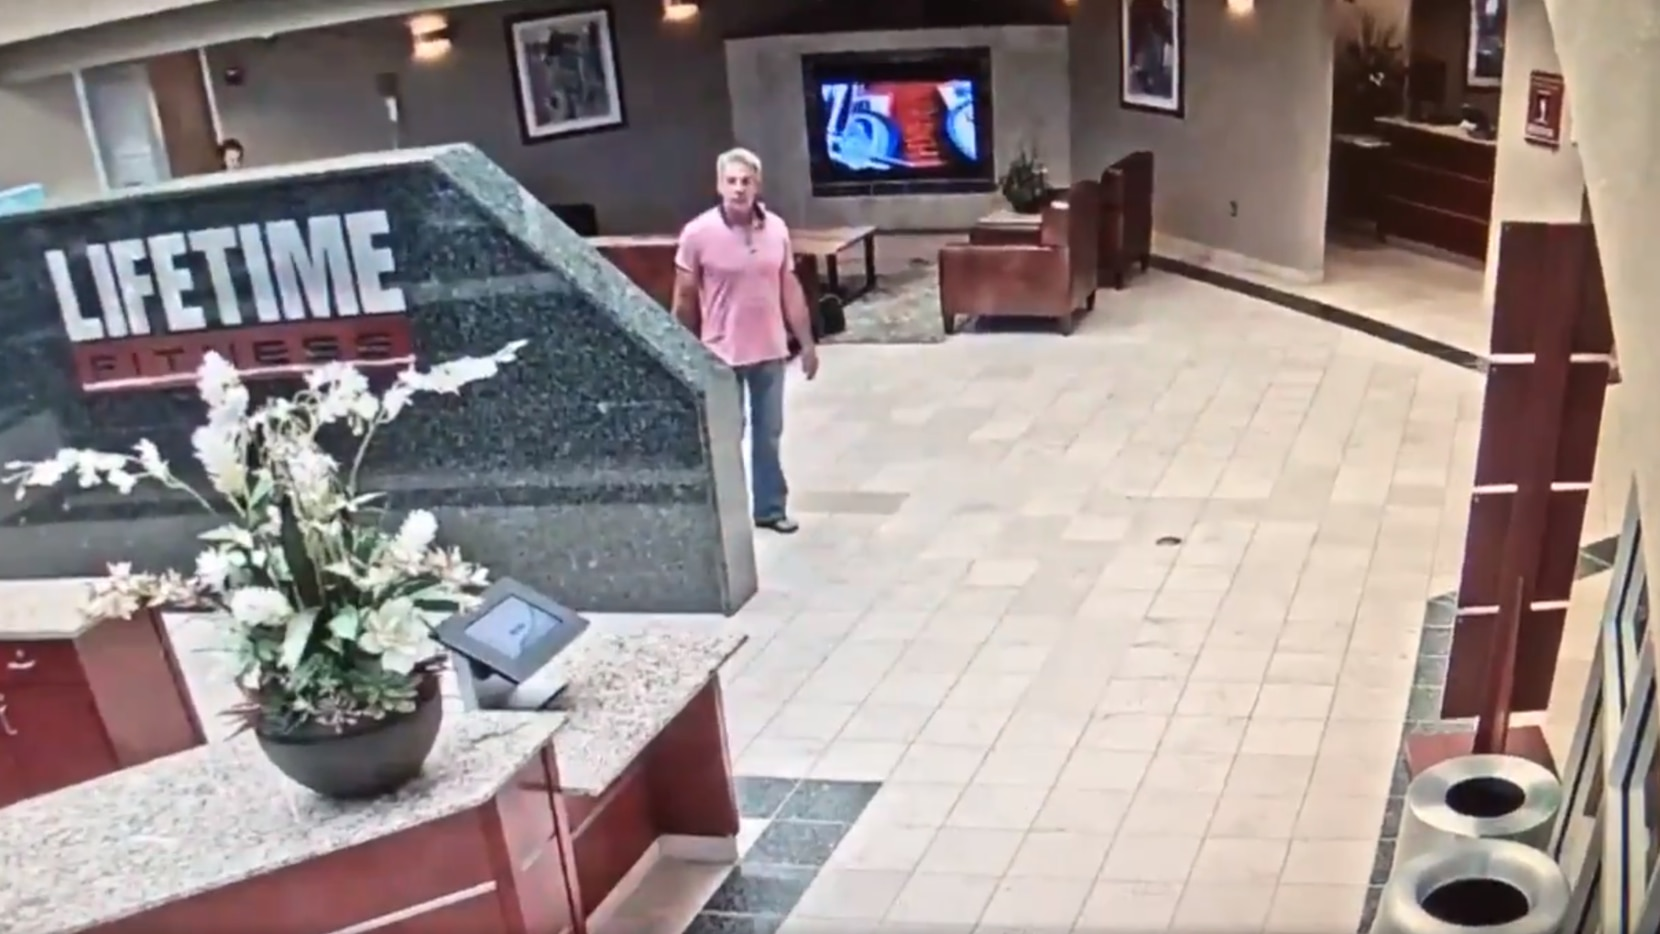 Police are looking for a man who they believe has stolen $90,000 in jewelry from Lifetime Fitness locations in Colleyville, Dallas and Plano.